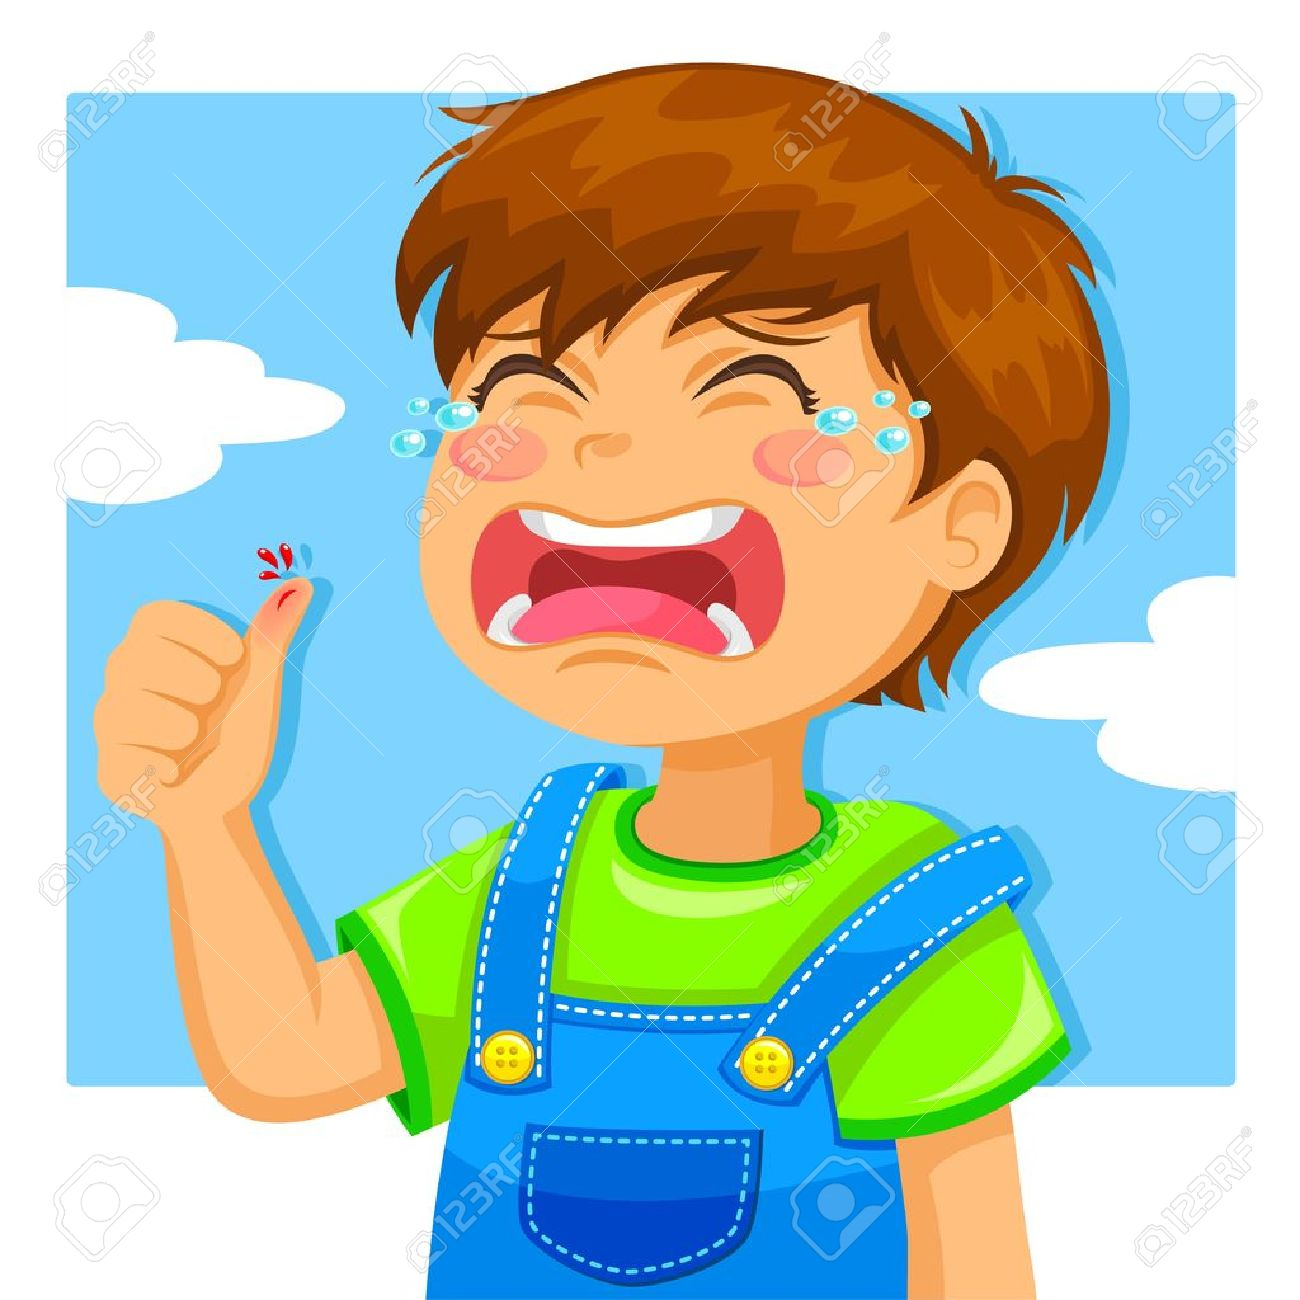 little boy crying because of a cut on his thumb Stock Vector - 14226209